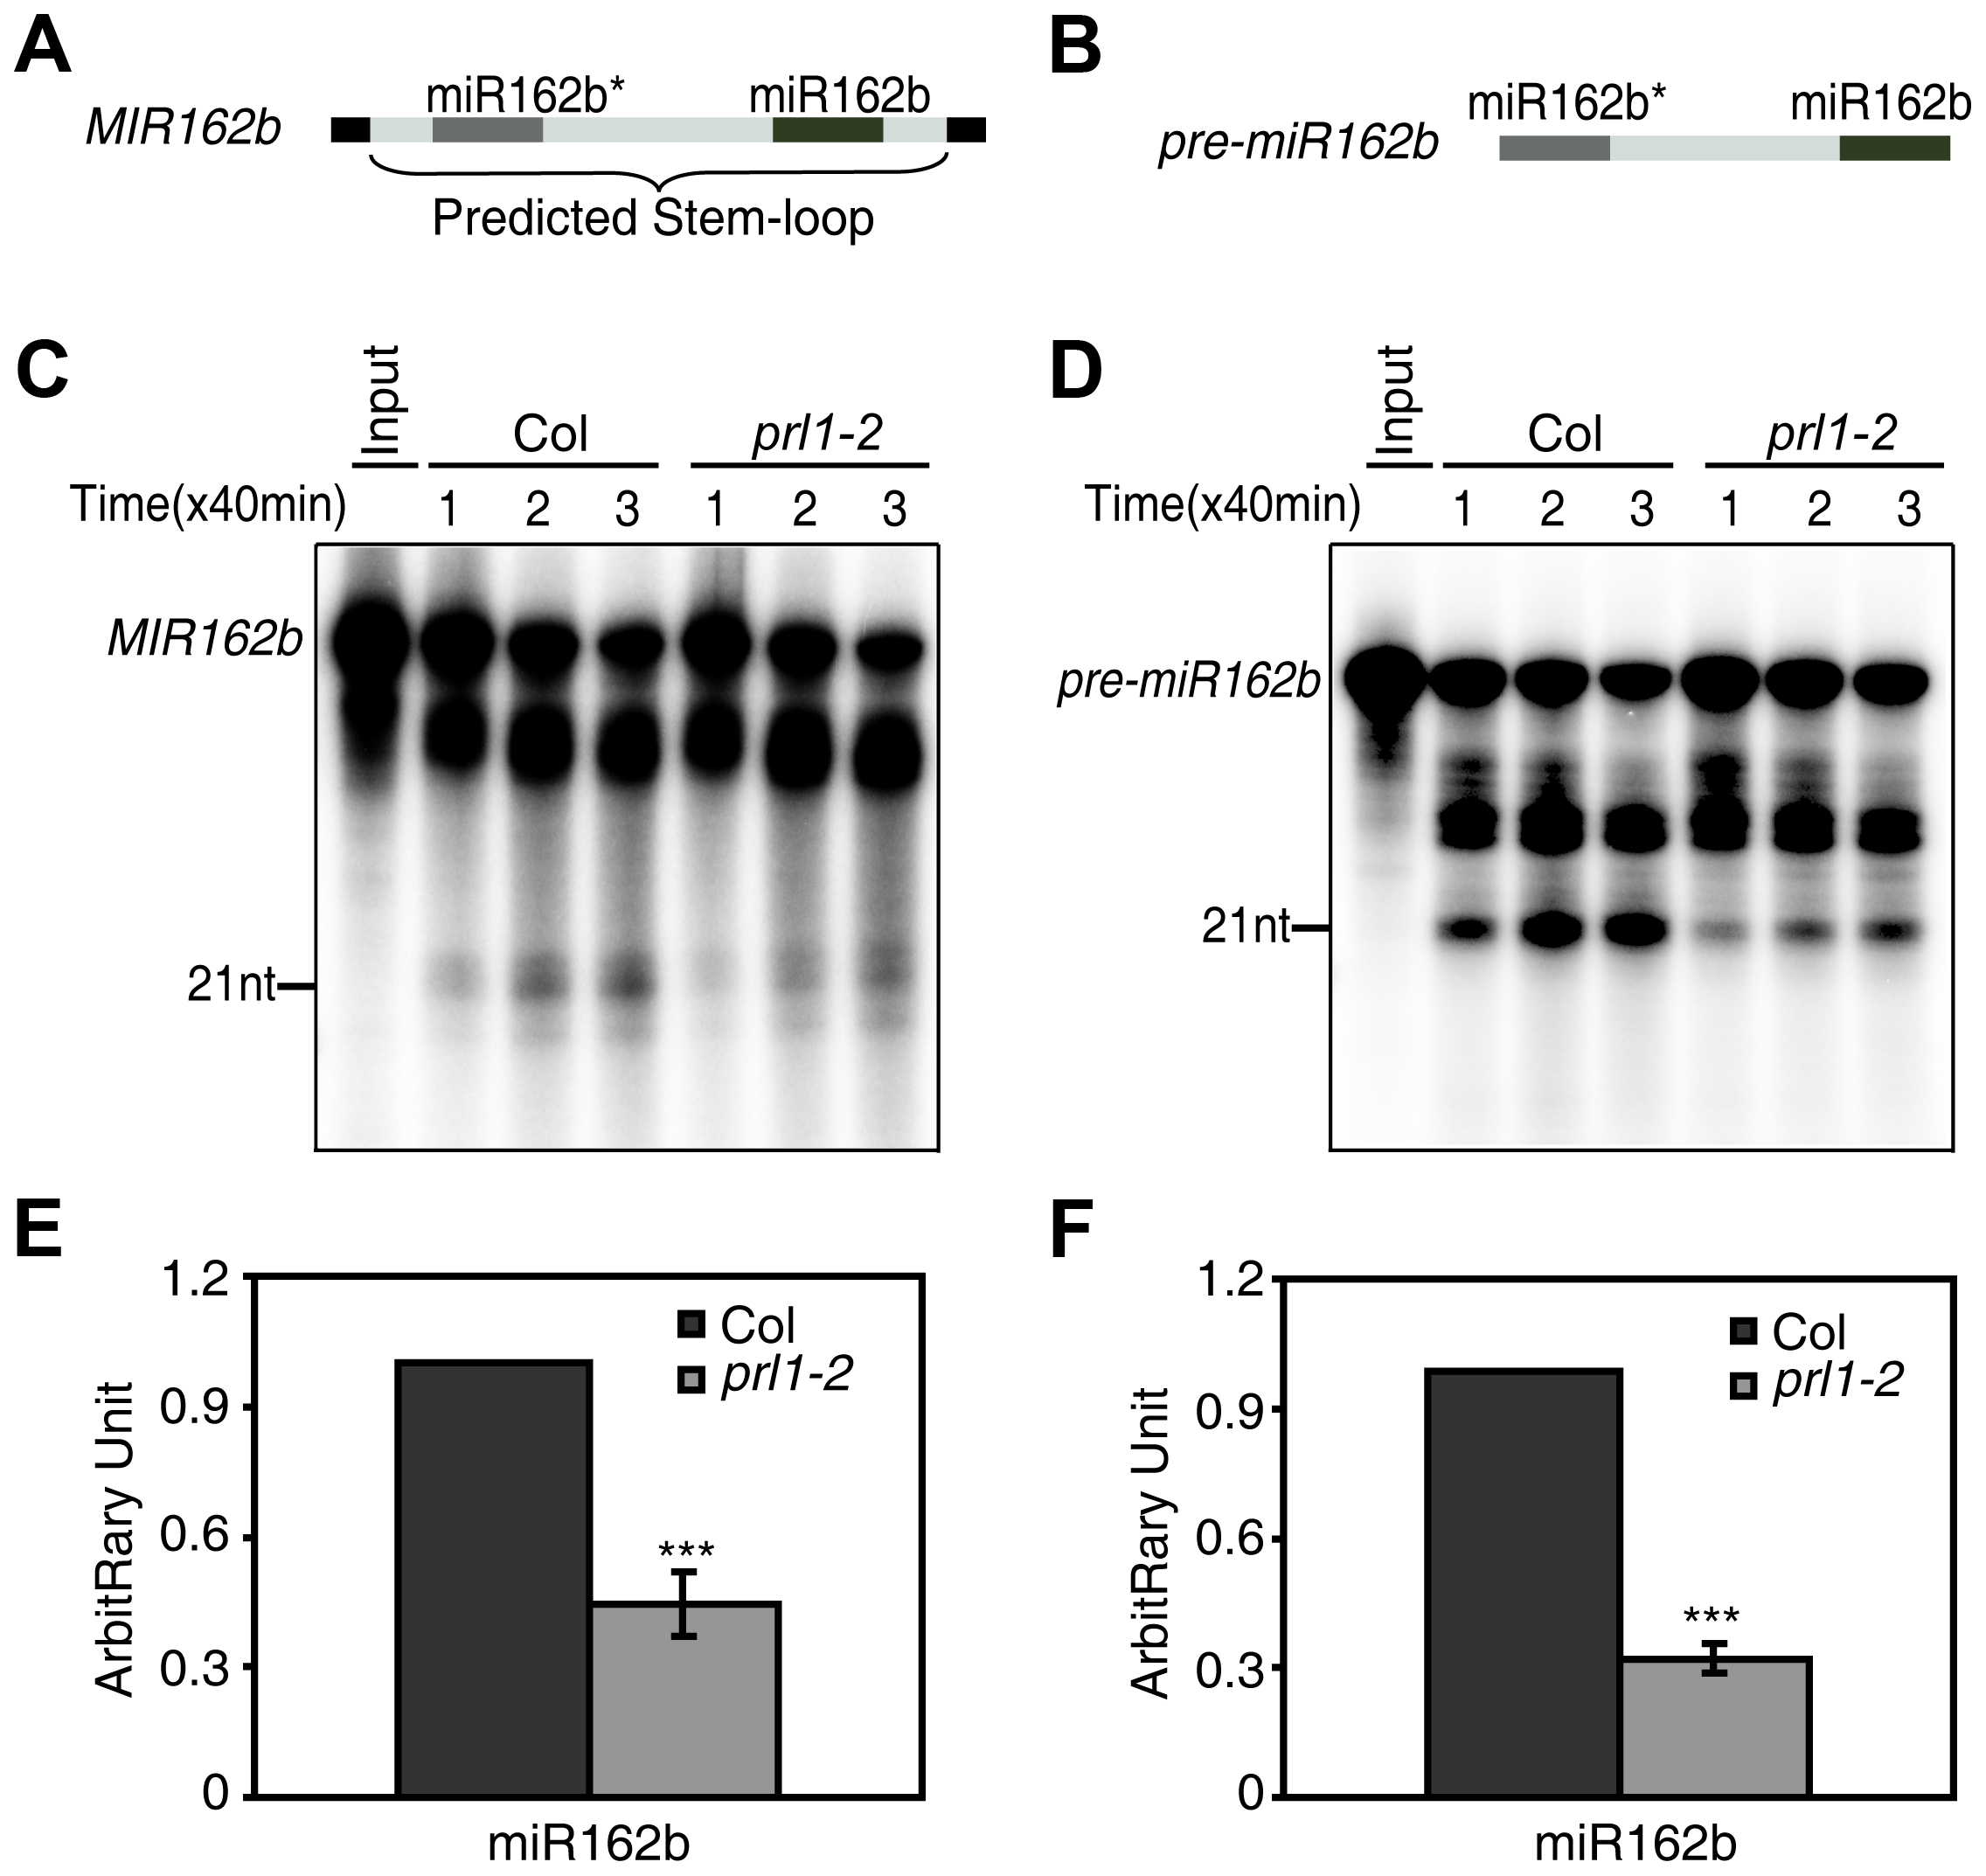 PRL1 is required for miRNA maturation <i>in vitro</i>.